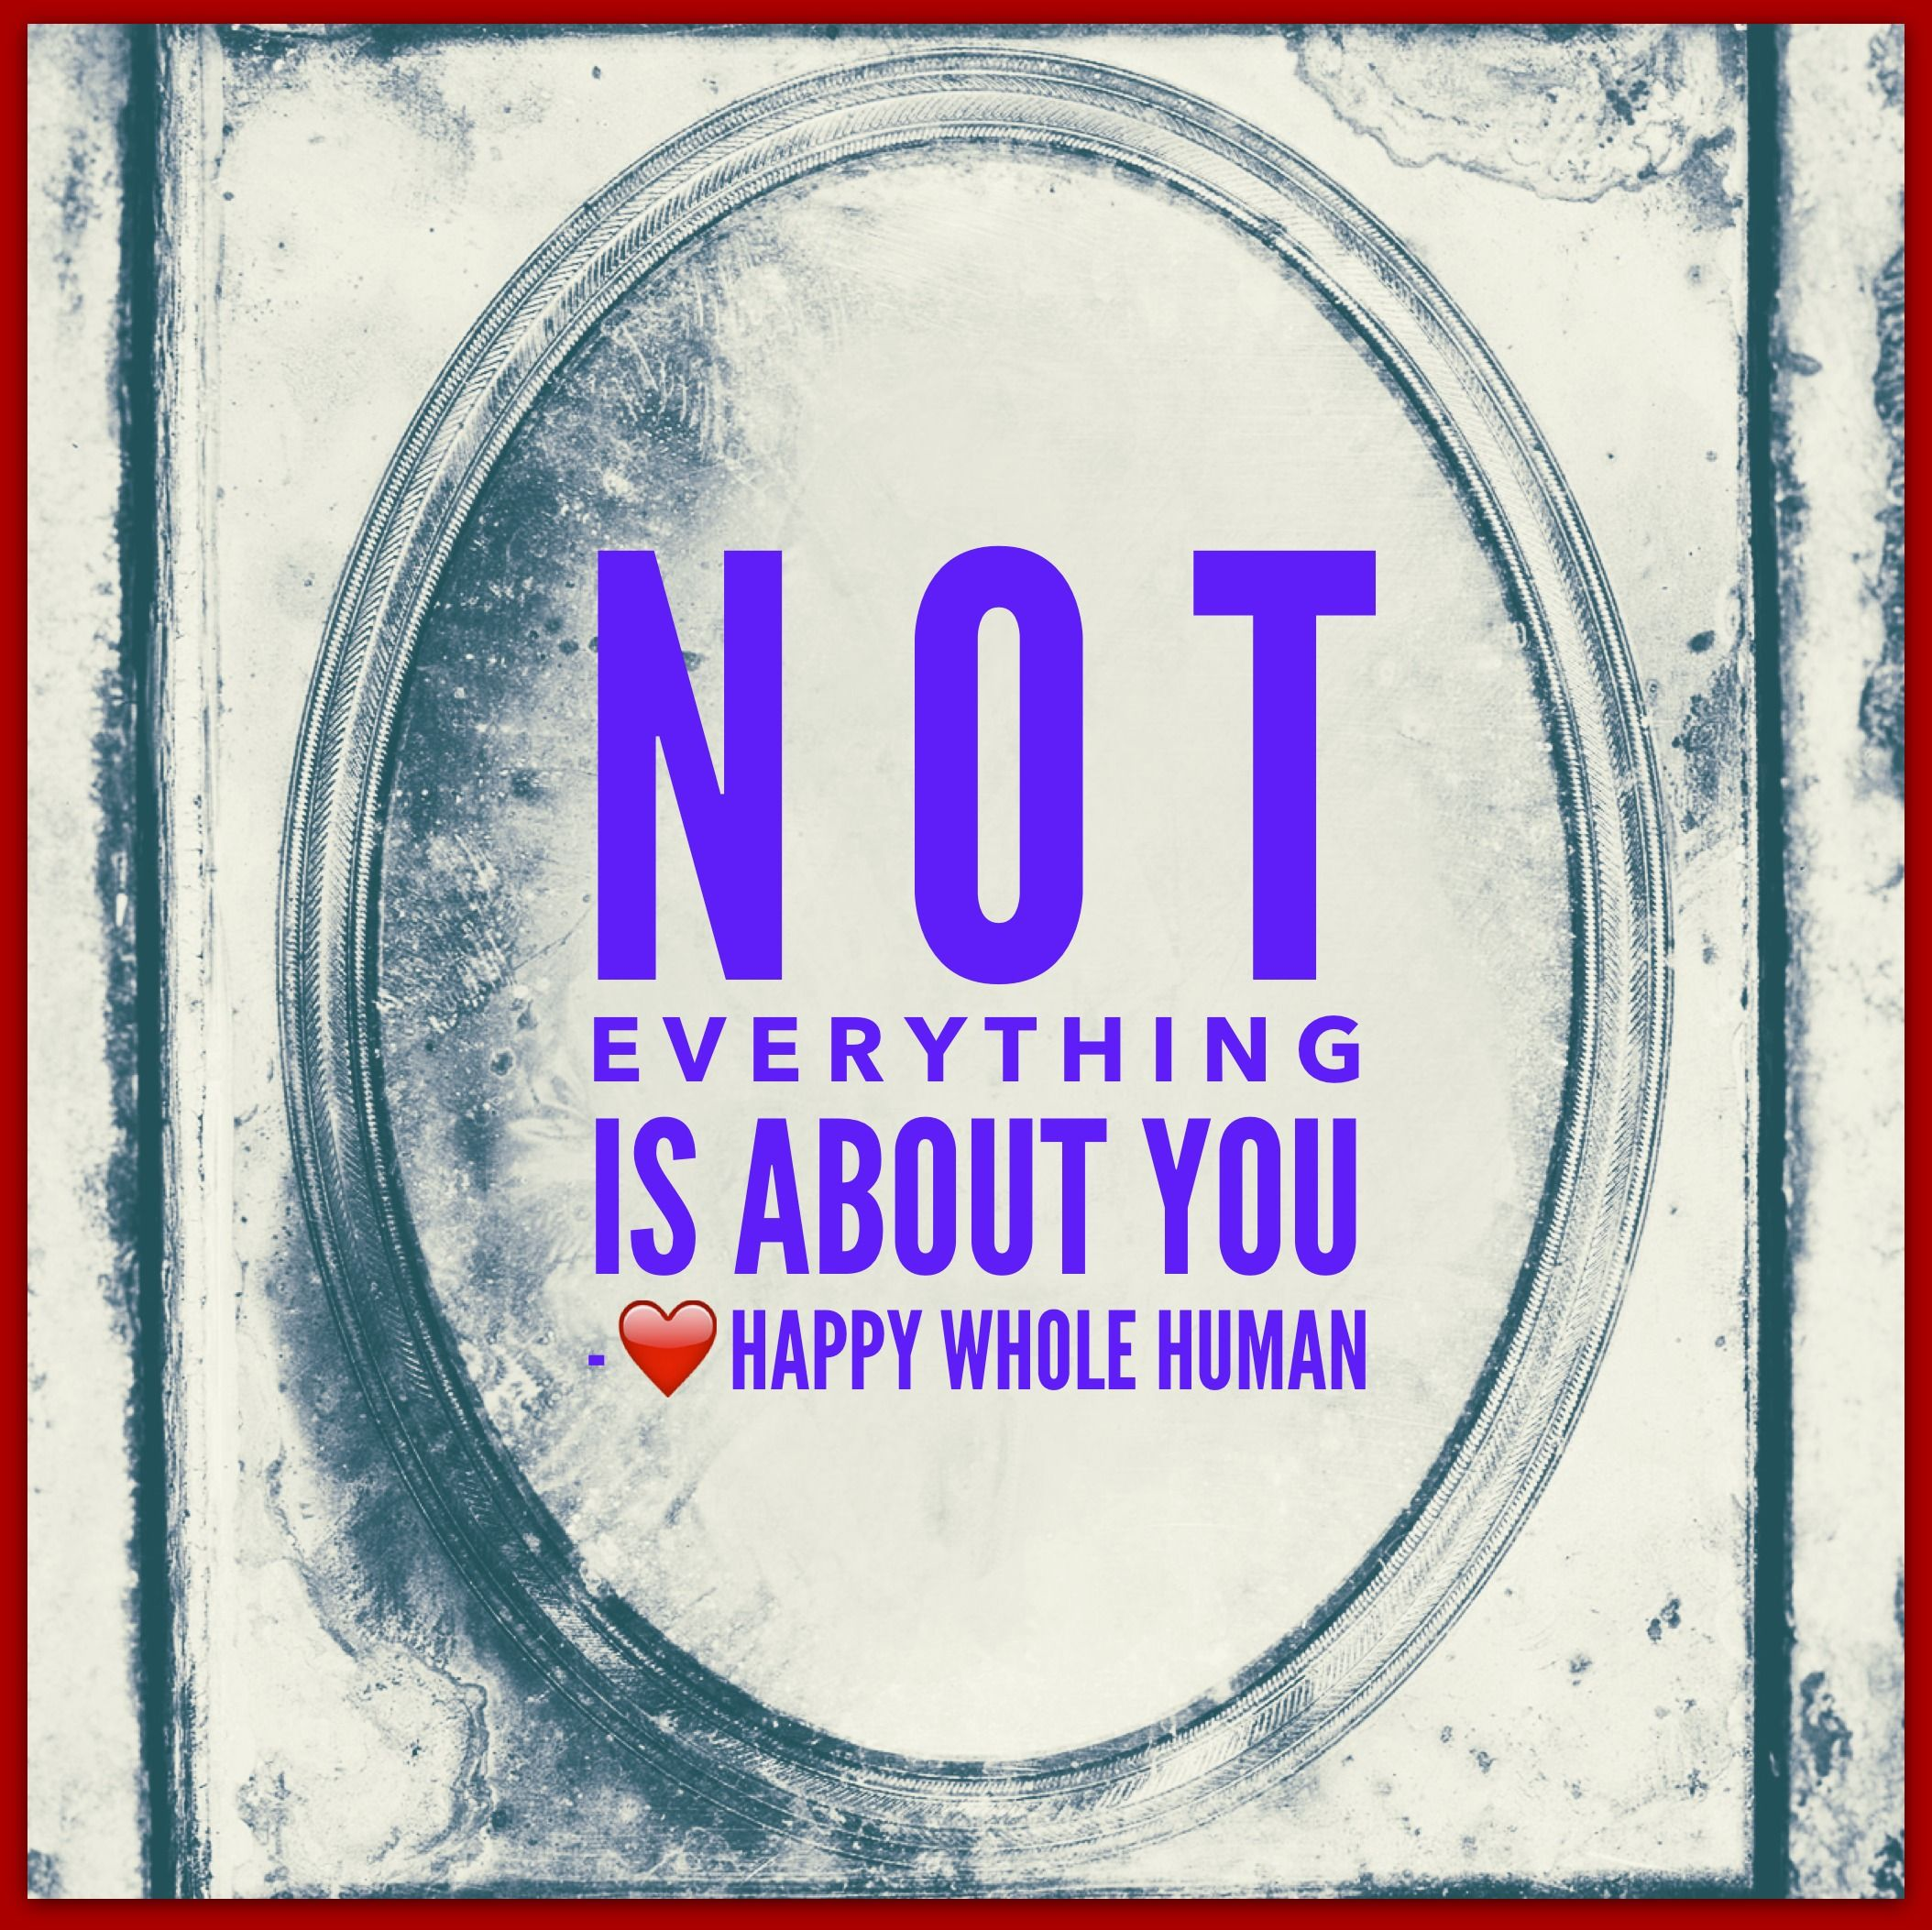 Not Everything is About You, Happy Whole Human Affirmation for Balanced Self Focus, Freedom from Self-absorption